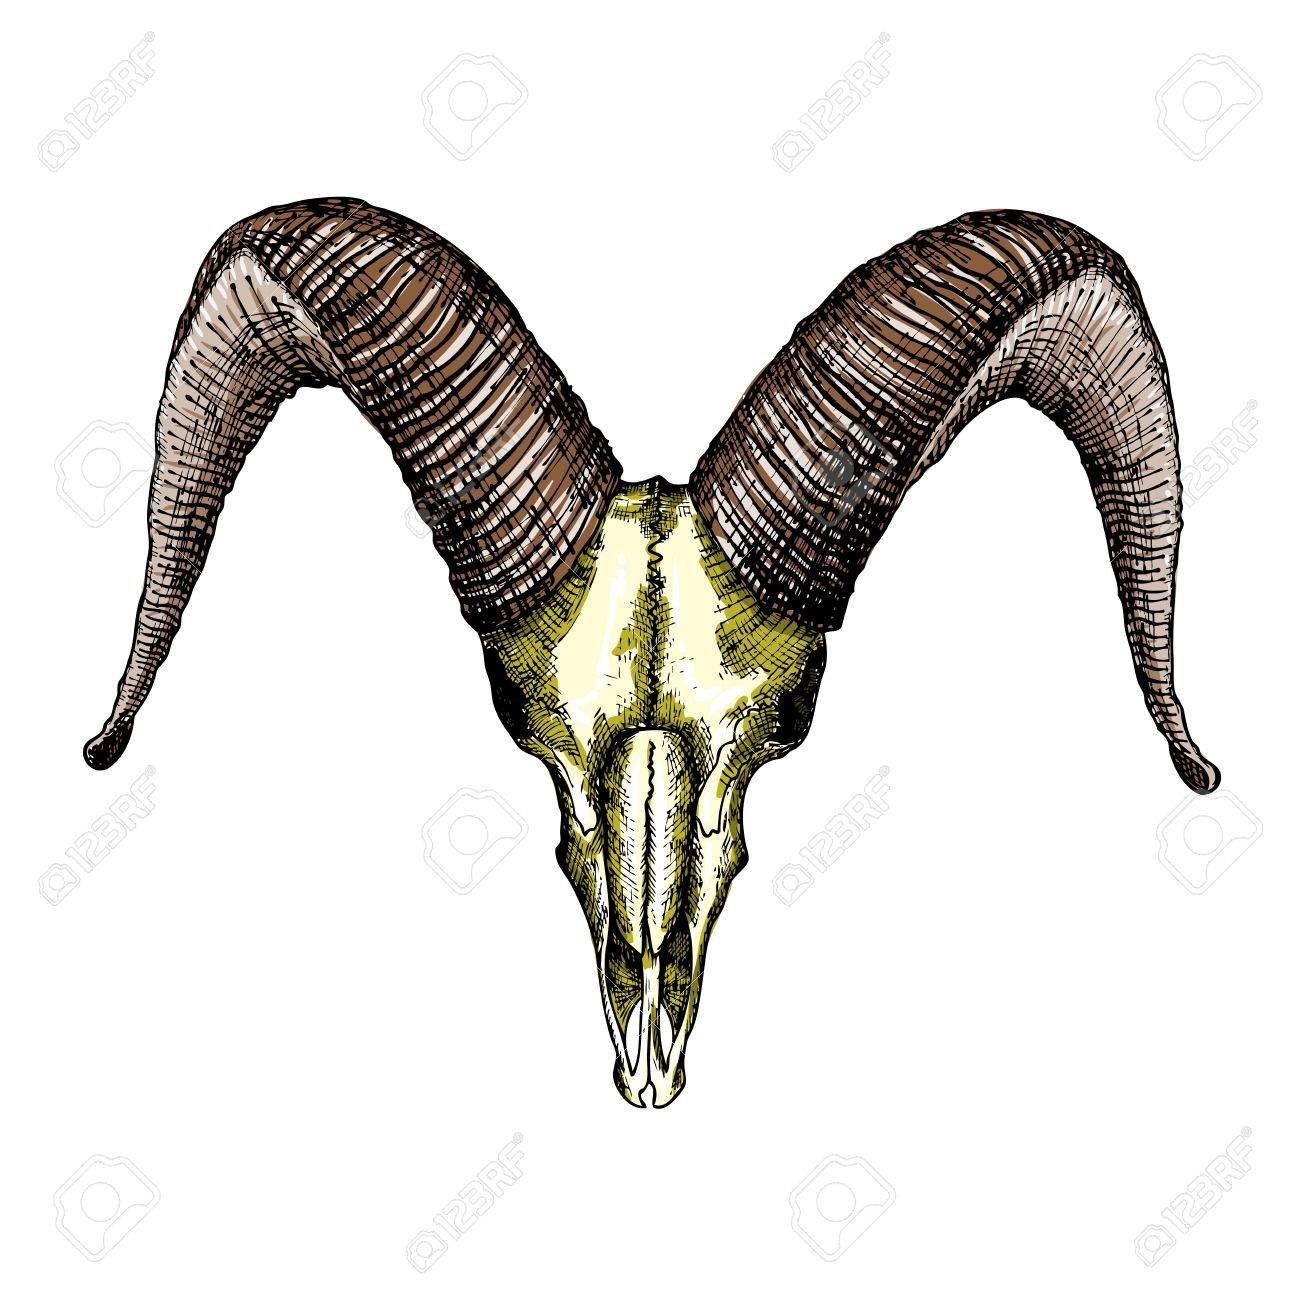 1300x1300 Goat Skull Hand Drawn, Isolated On White. Drawing Sketch